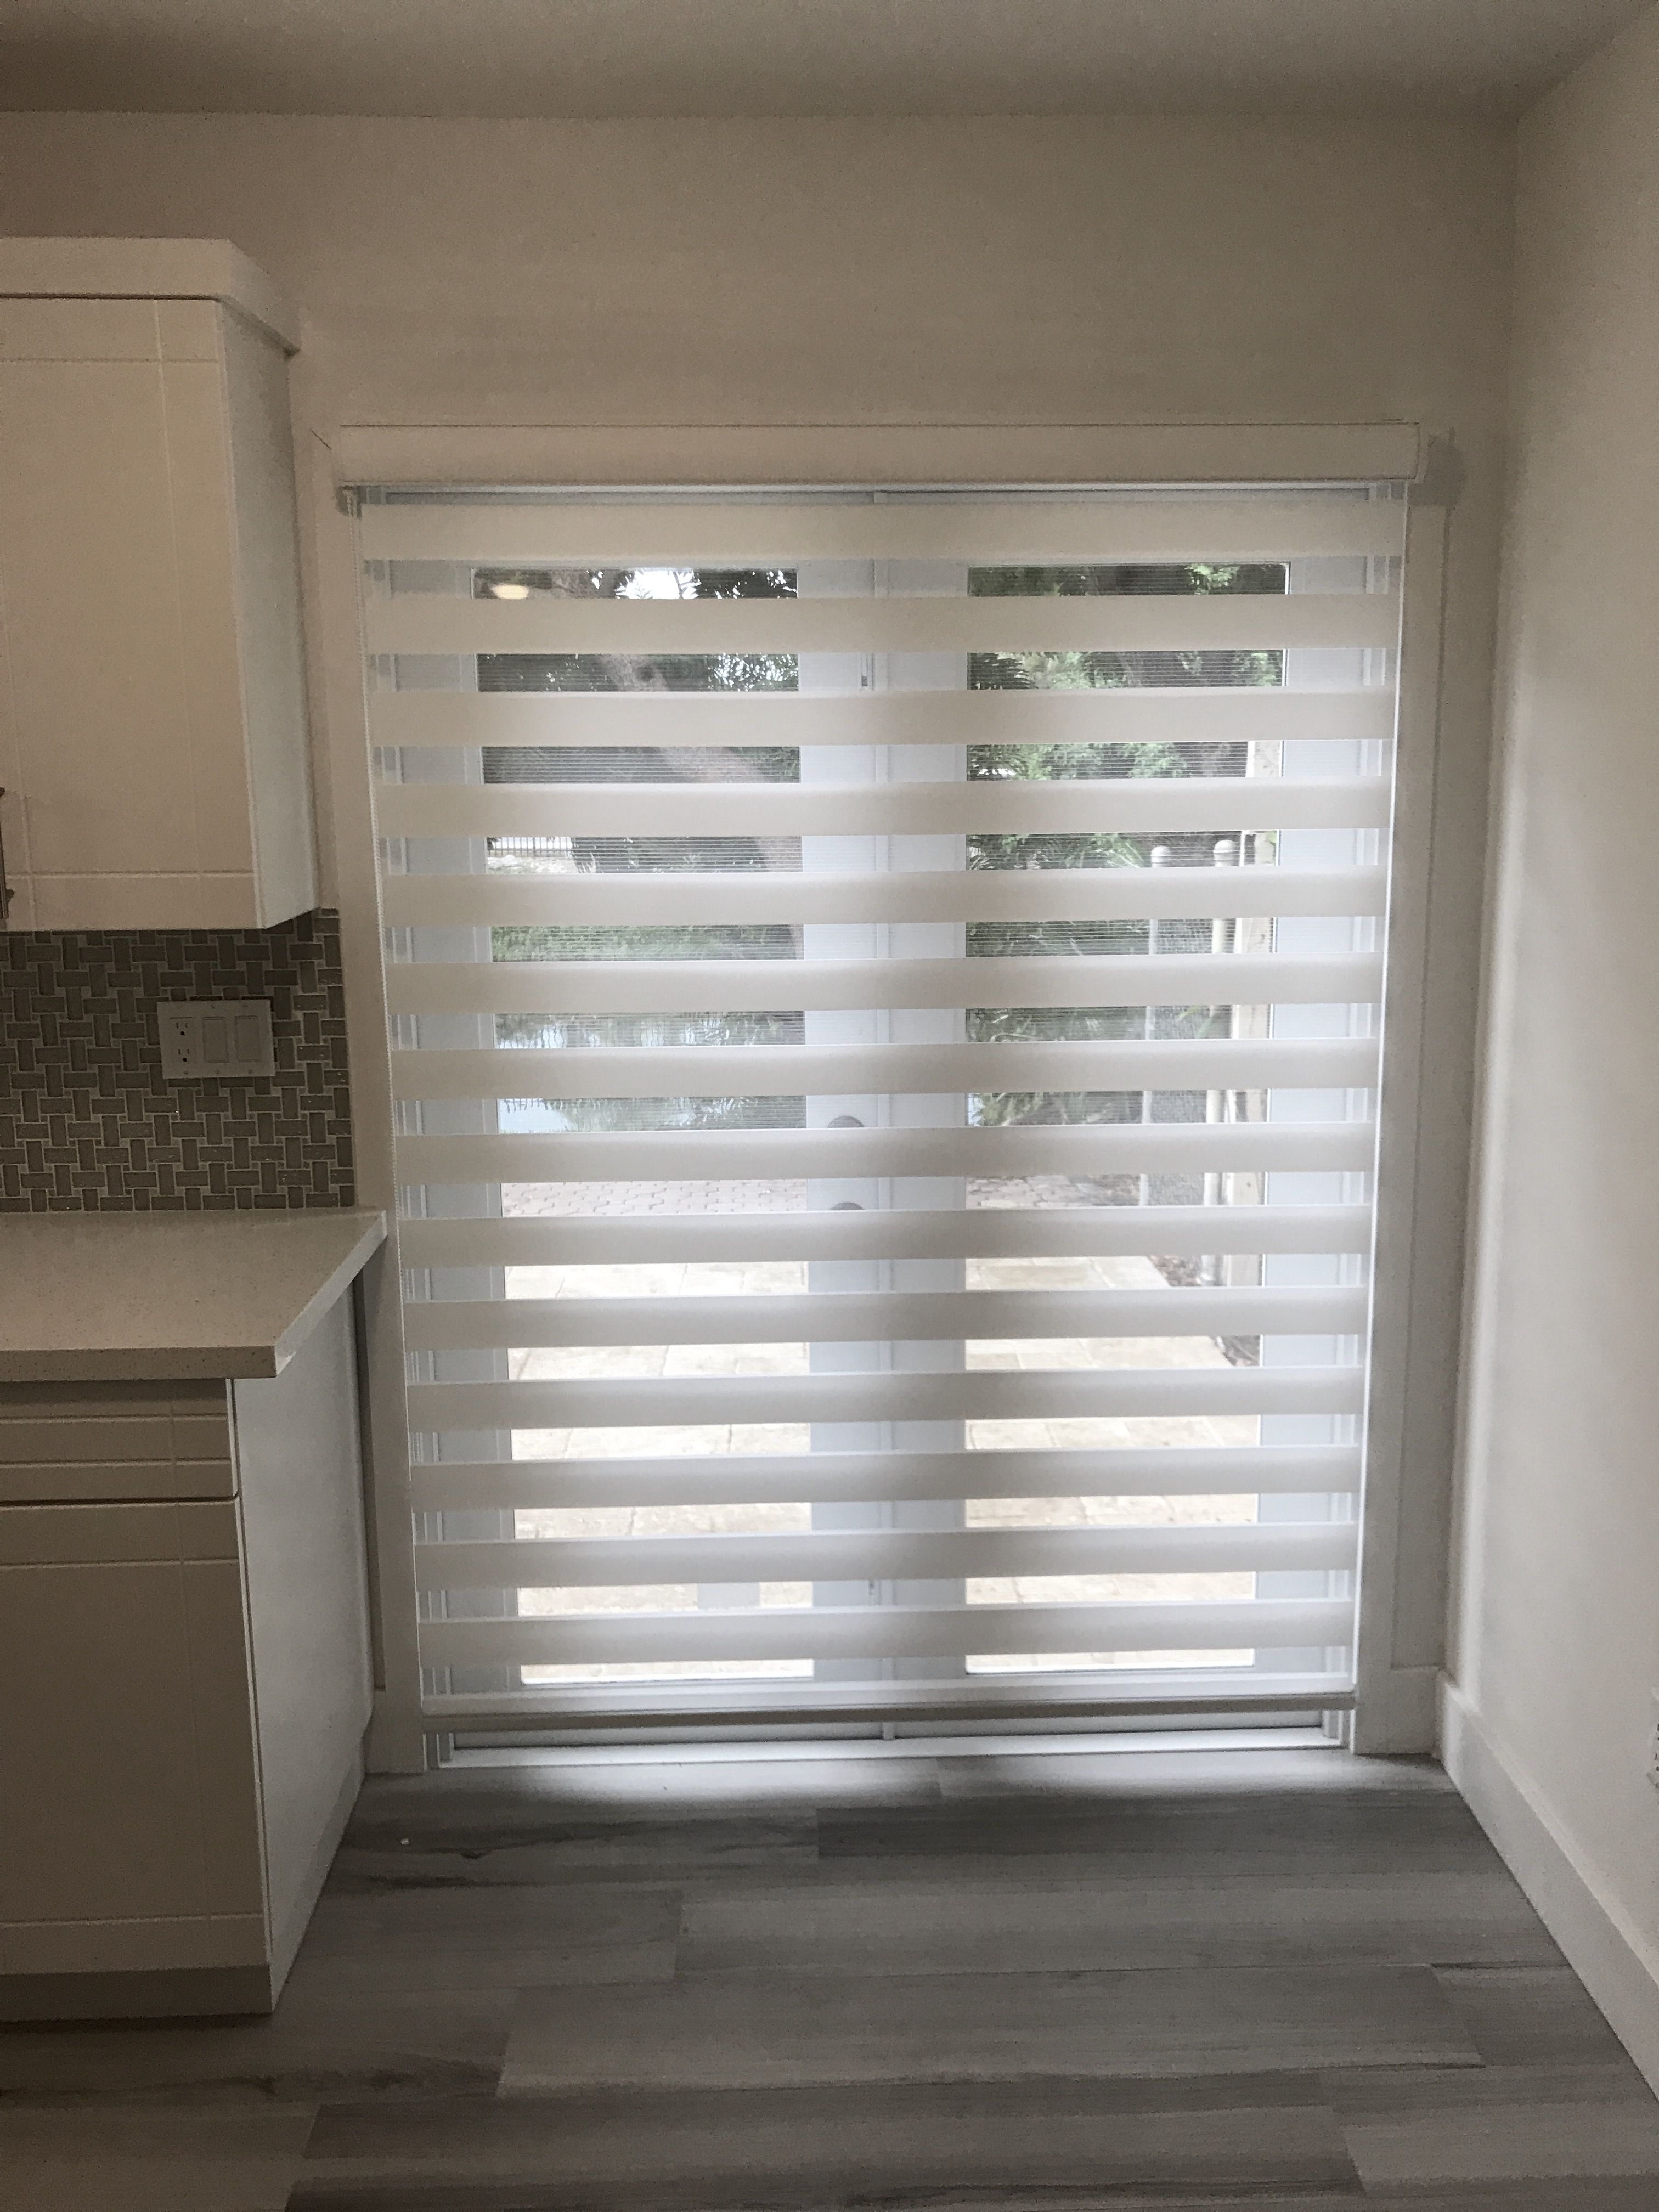 window products frenchdoors door blind treatment shades cell mice for hi french ideas on preset doors